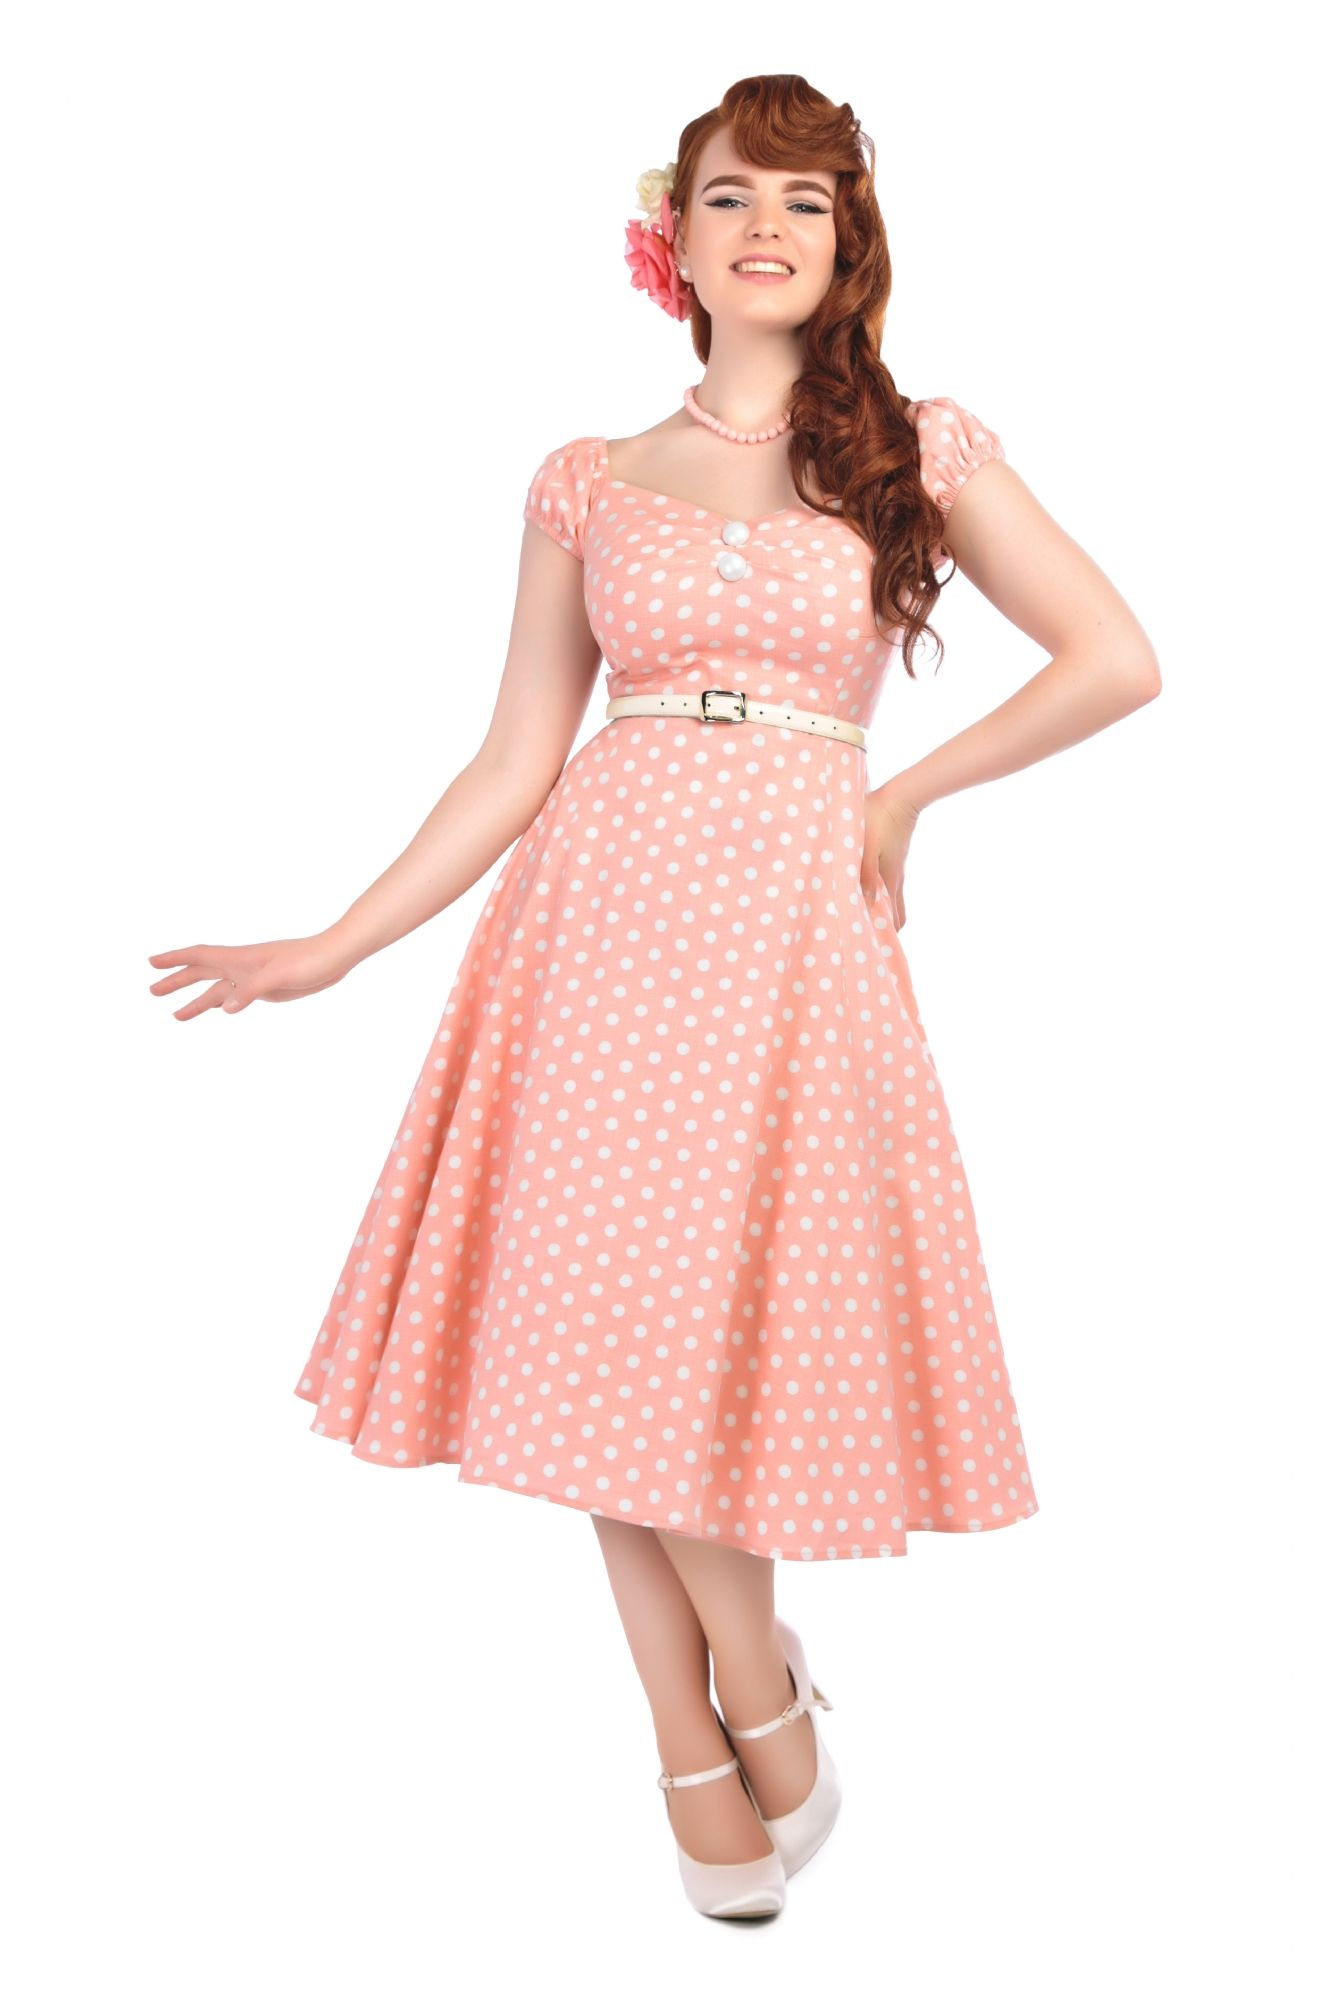 Dorable 1950 Vestidos De Dama De Honor Estilo Uk Modelo - Colección ...